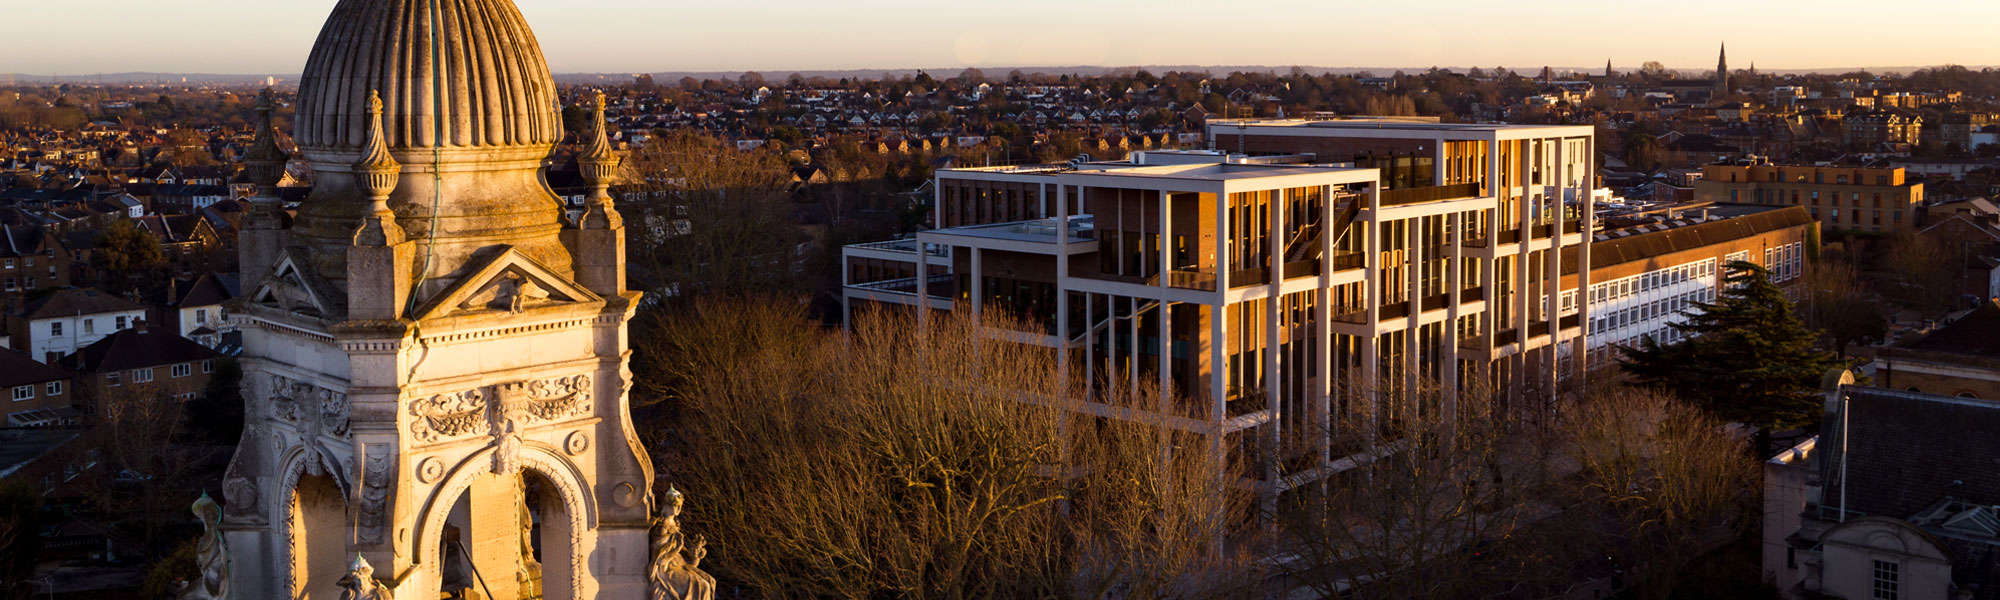 PCE project is RIBA Stirling Prize 2021 nominated